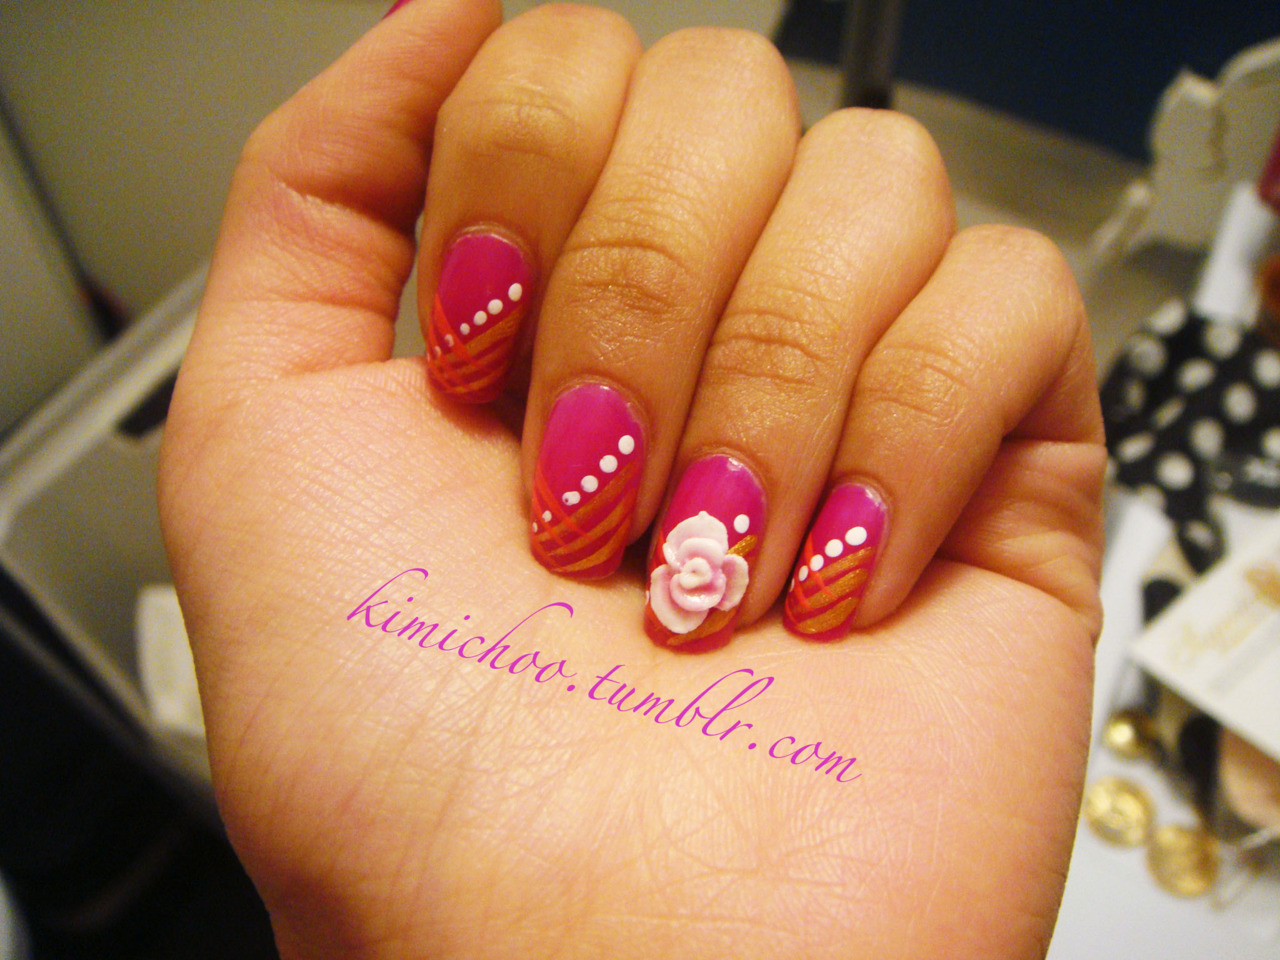 i did my own nail polish, but someone else did the 3D flower for me! check out their salon if you're in the GTA area… *sparks salon on king st. west*